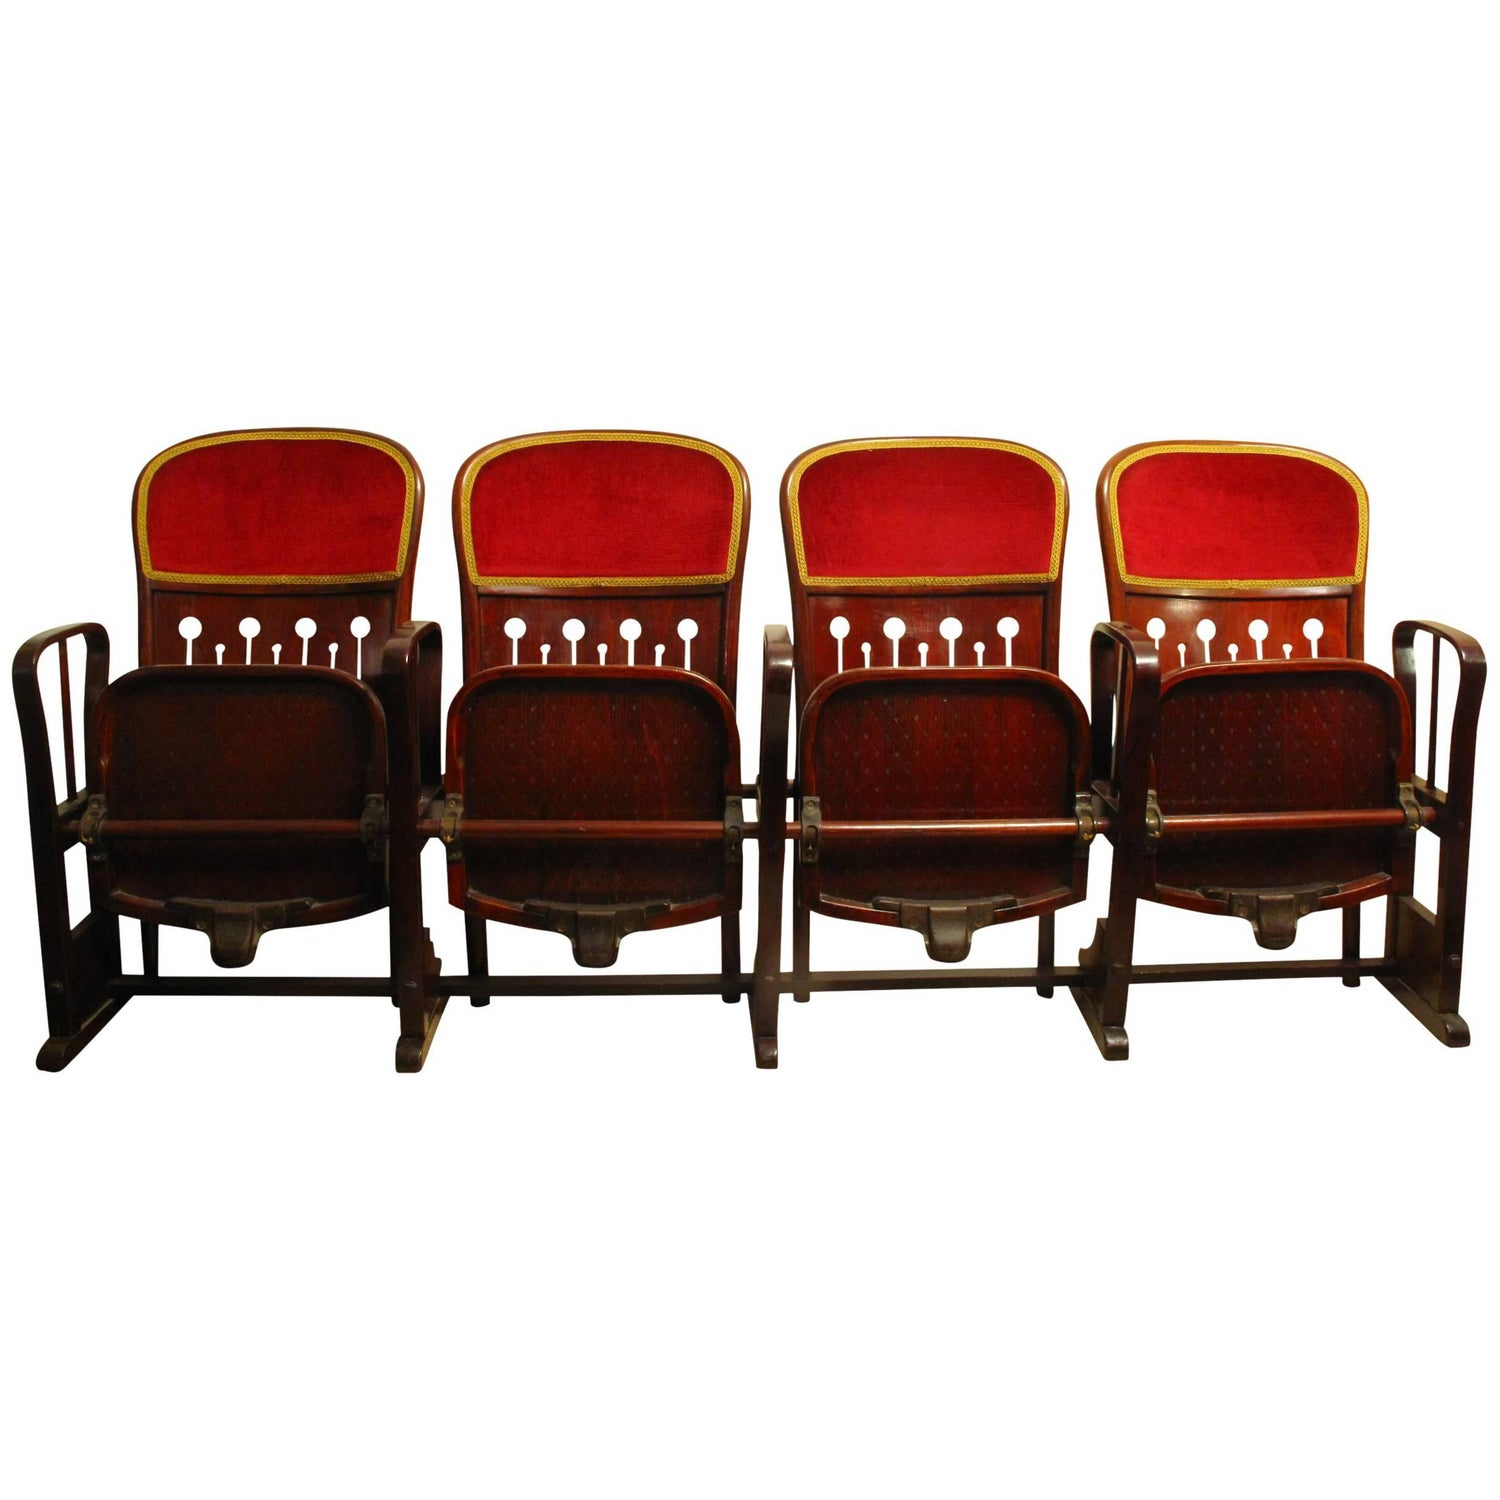 Bentwood Furniture - 814 For Sale at 1stdibs